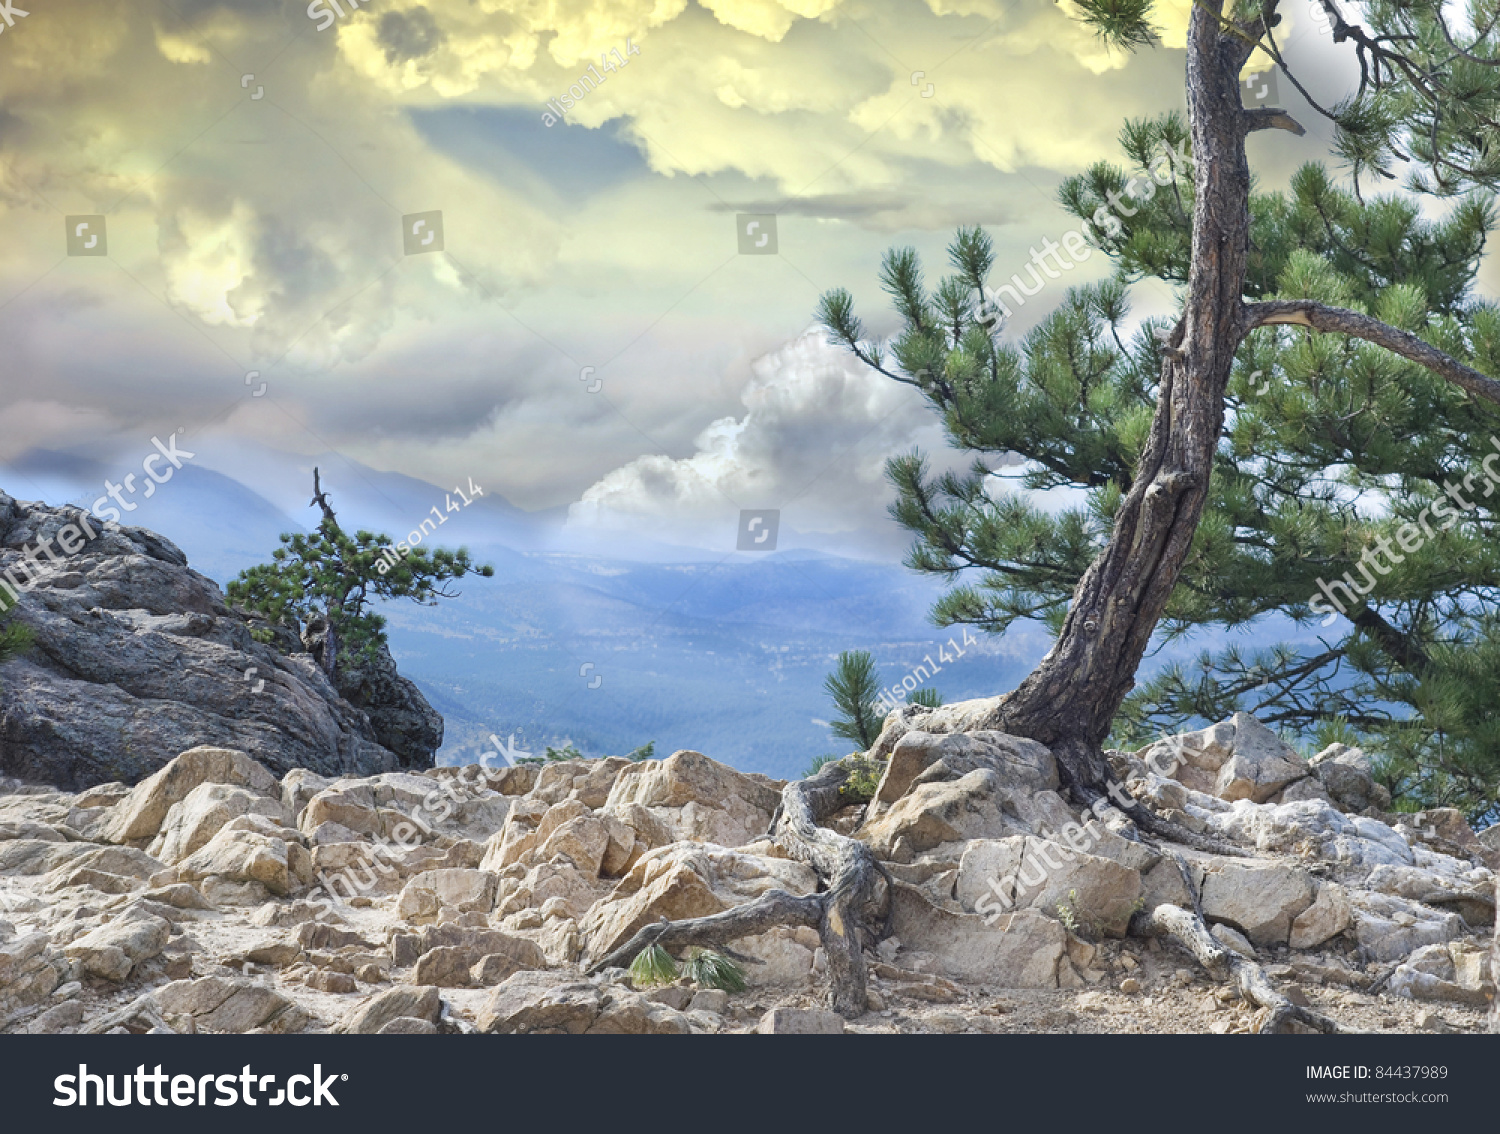 stock-photo-scenic-view-of-mountain-foot